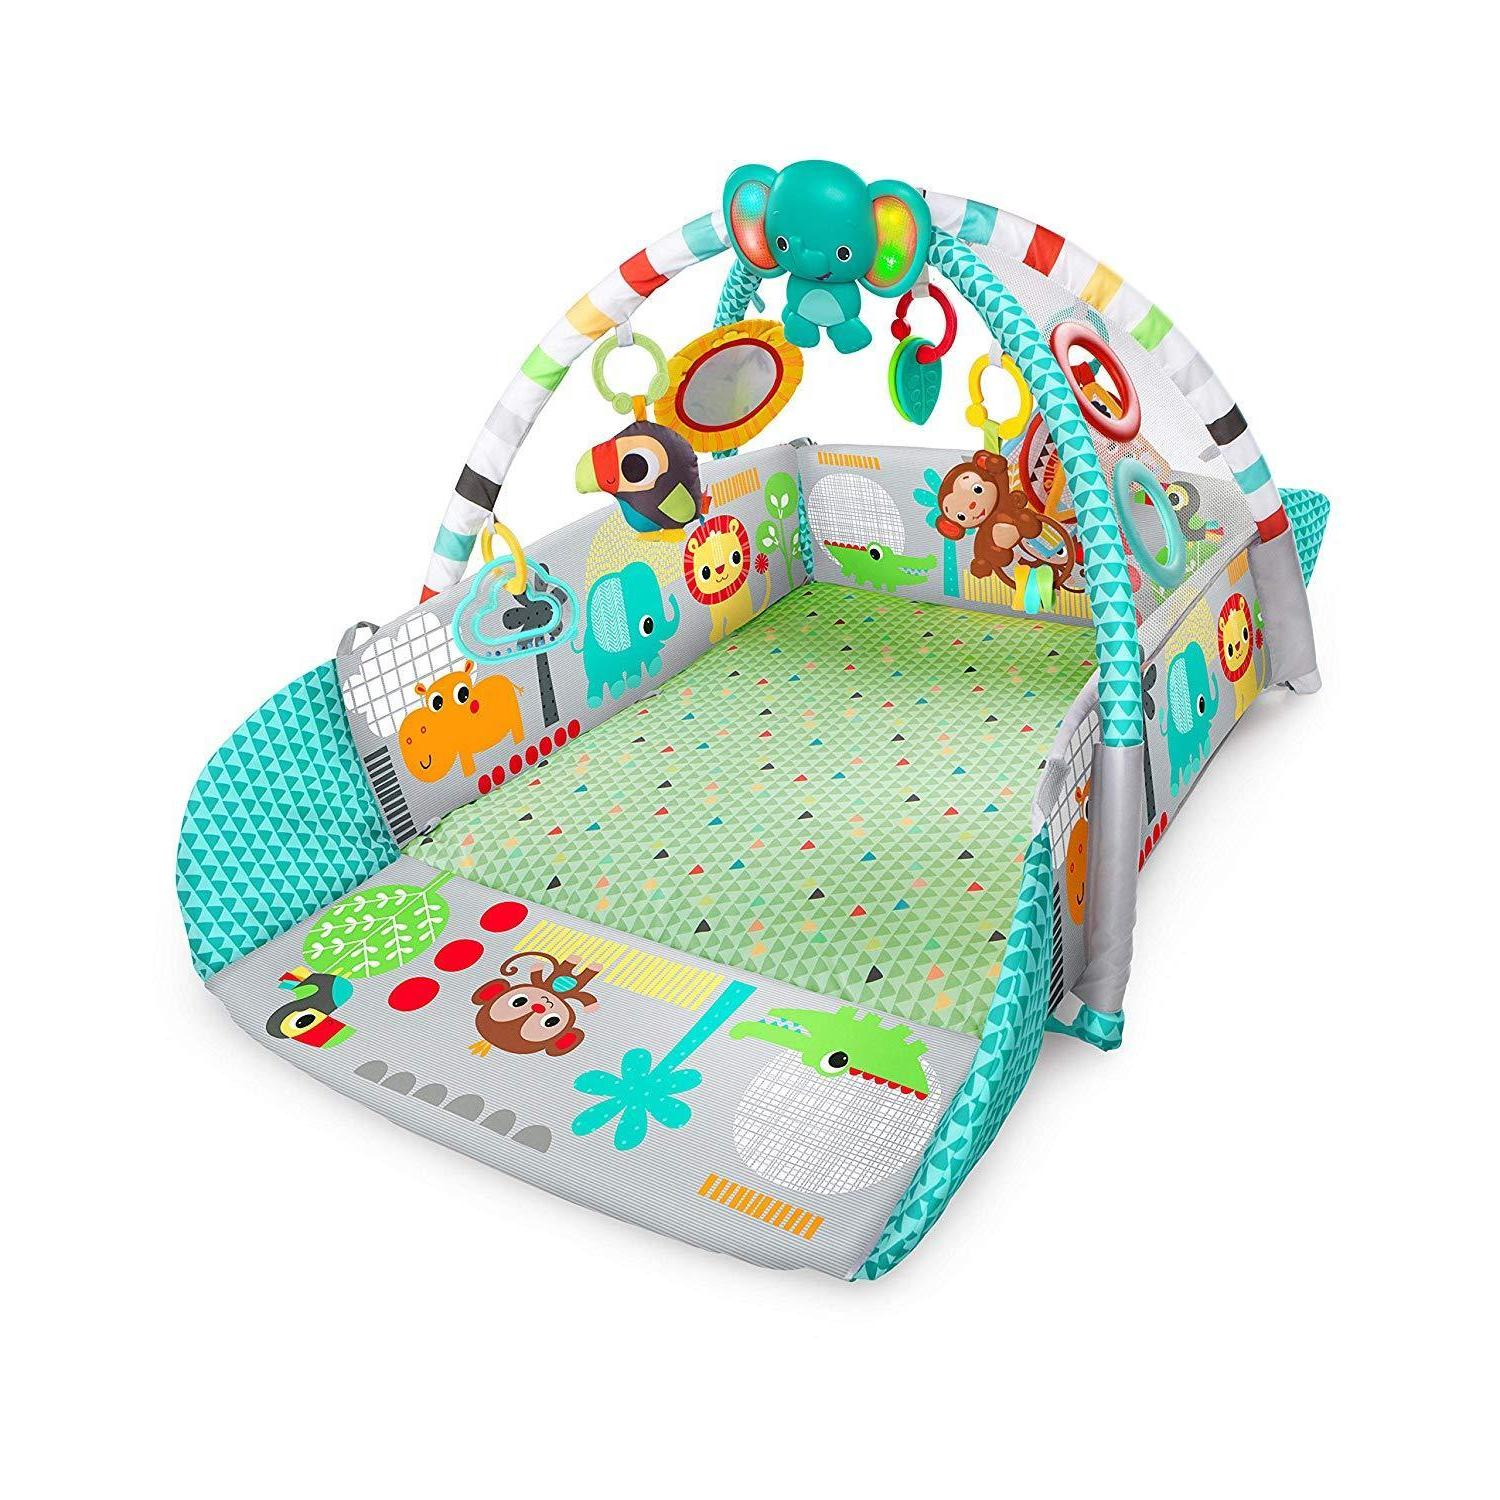 Bright 5-in-1 Way Play Gym